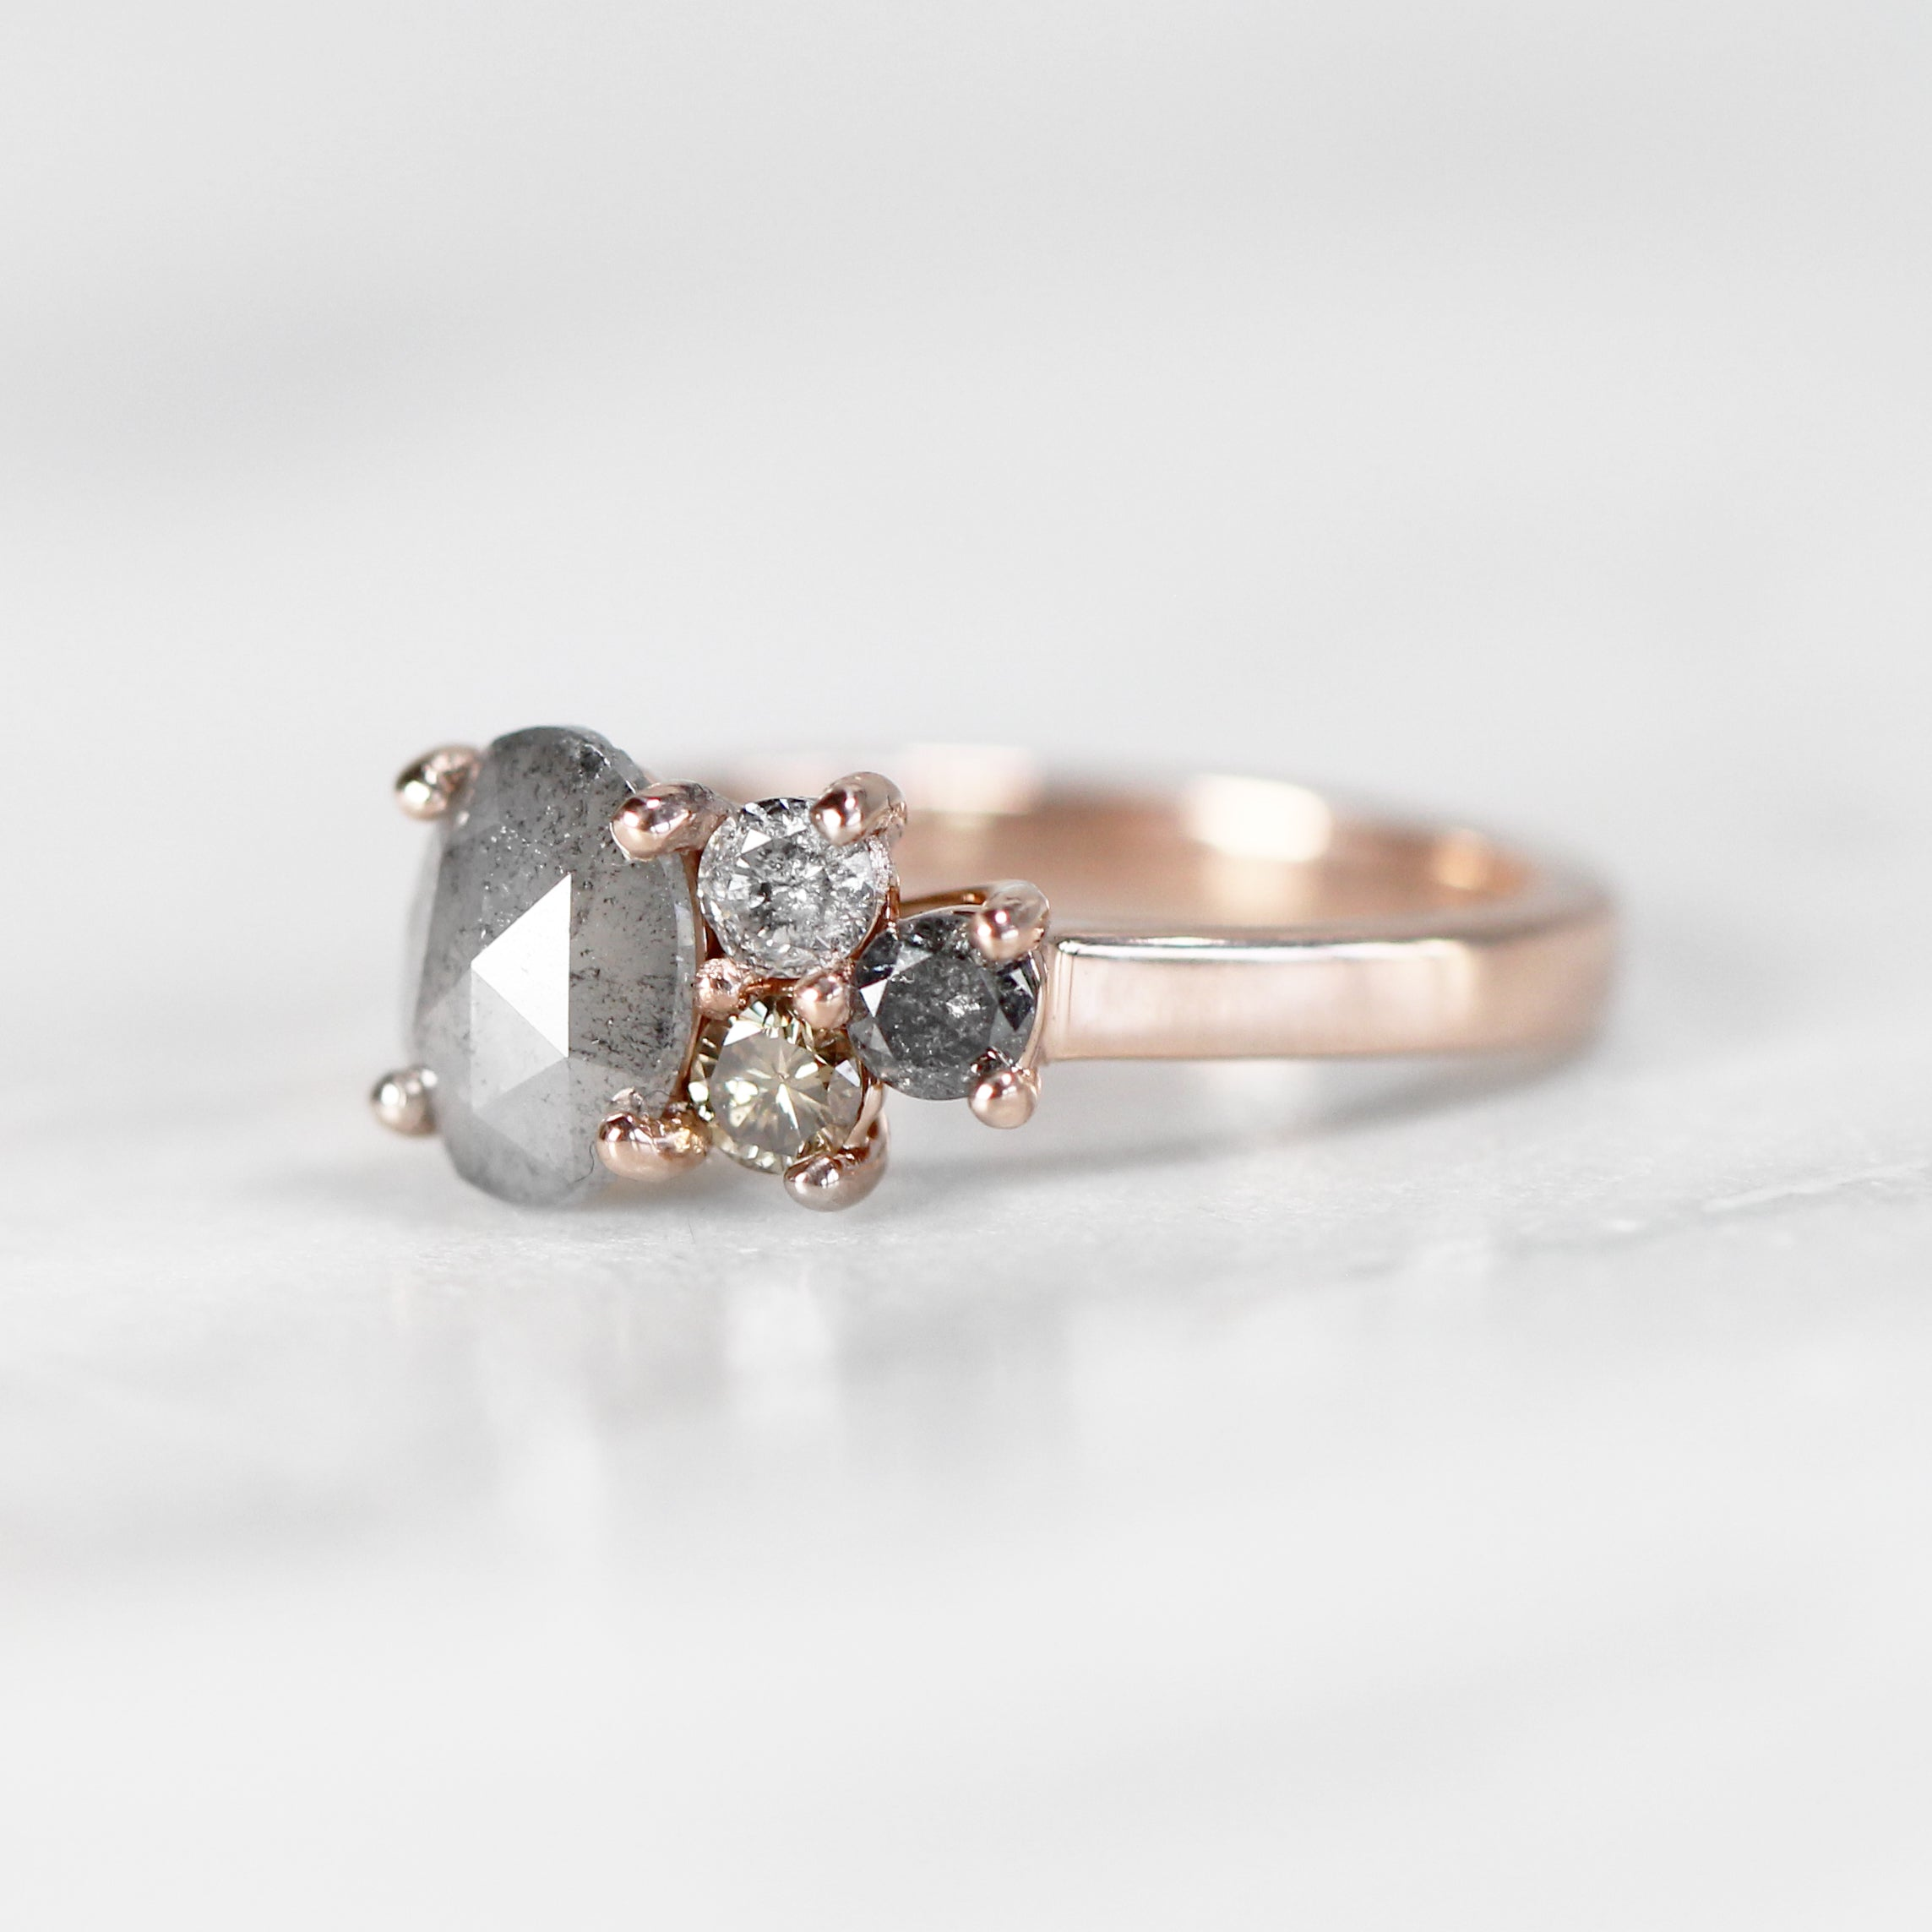 Avery Ring with 1.01 Carat Oval Celestial Diamond in 10k Rose Gold - Ready to Size and Ship - Celestial Diamonds ® by Midwinter Co.